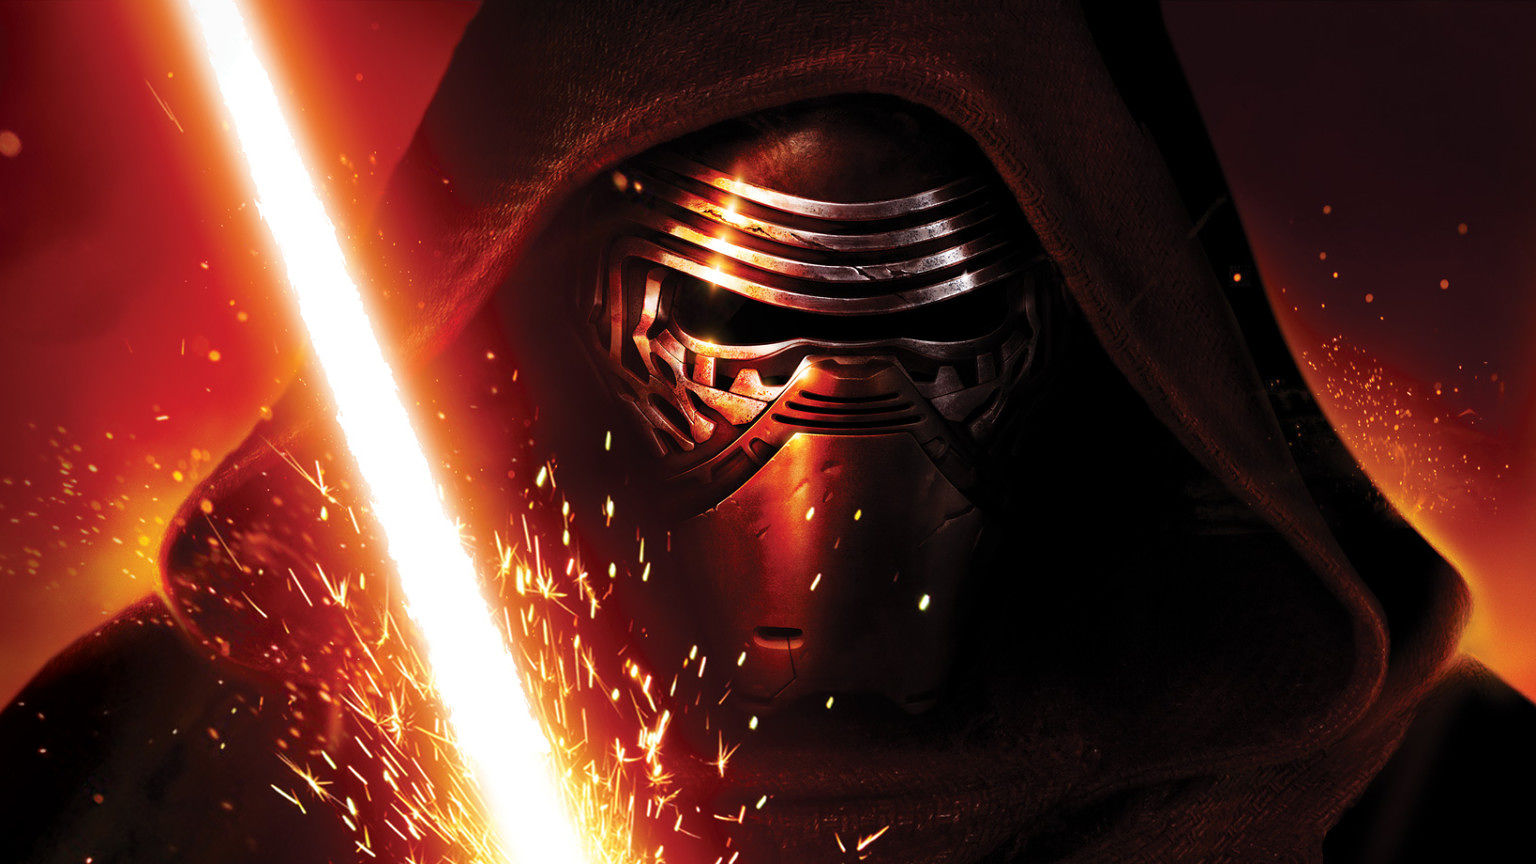 kylo ren wallpaper We provide the best collection of HD wallpapers 1536x864